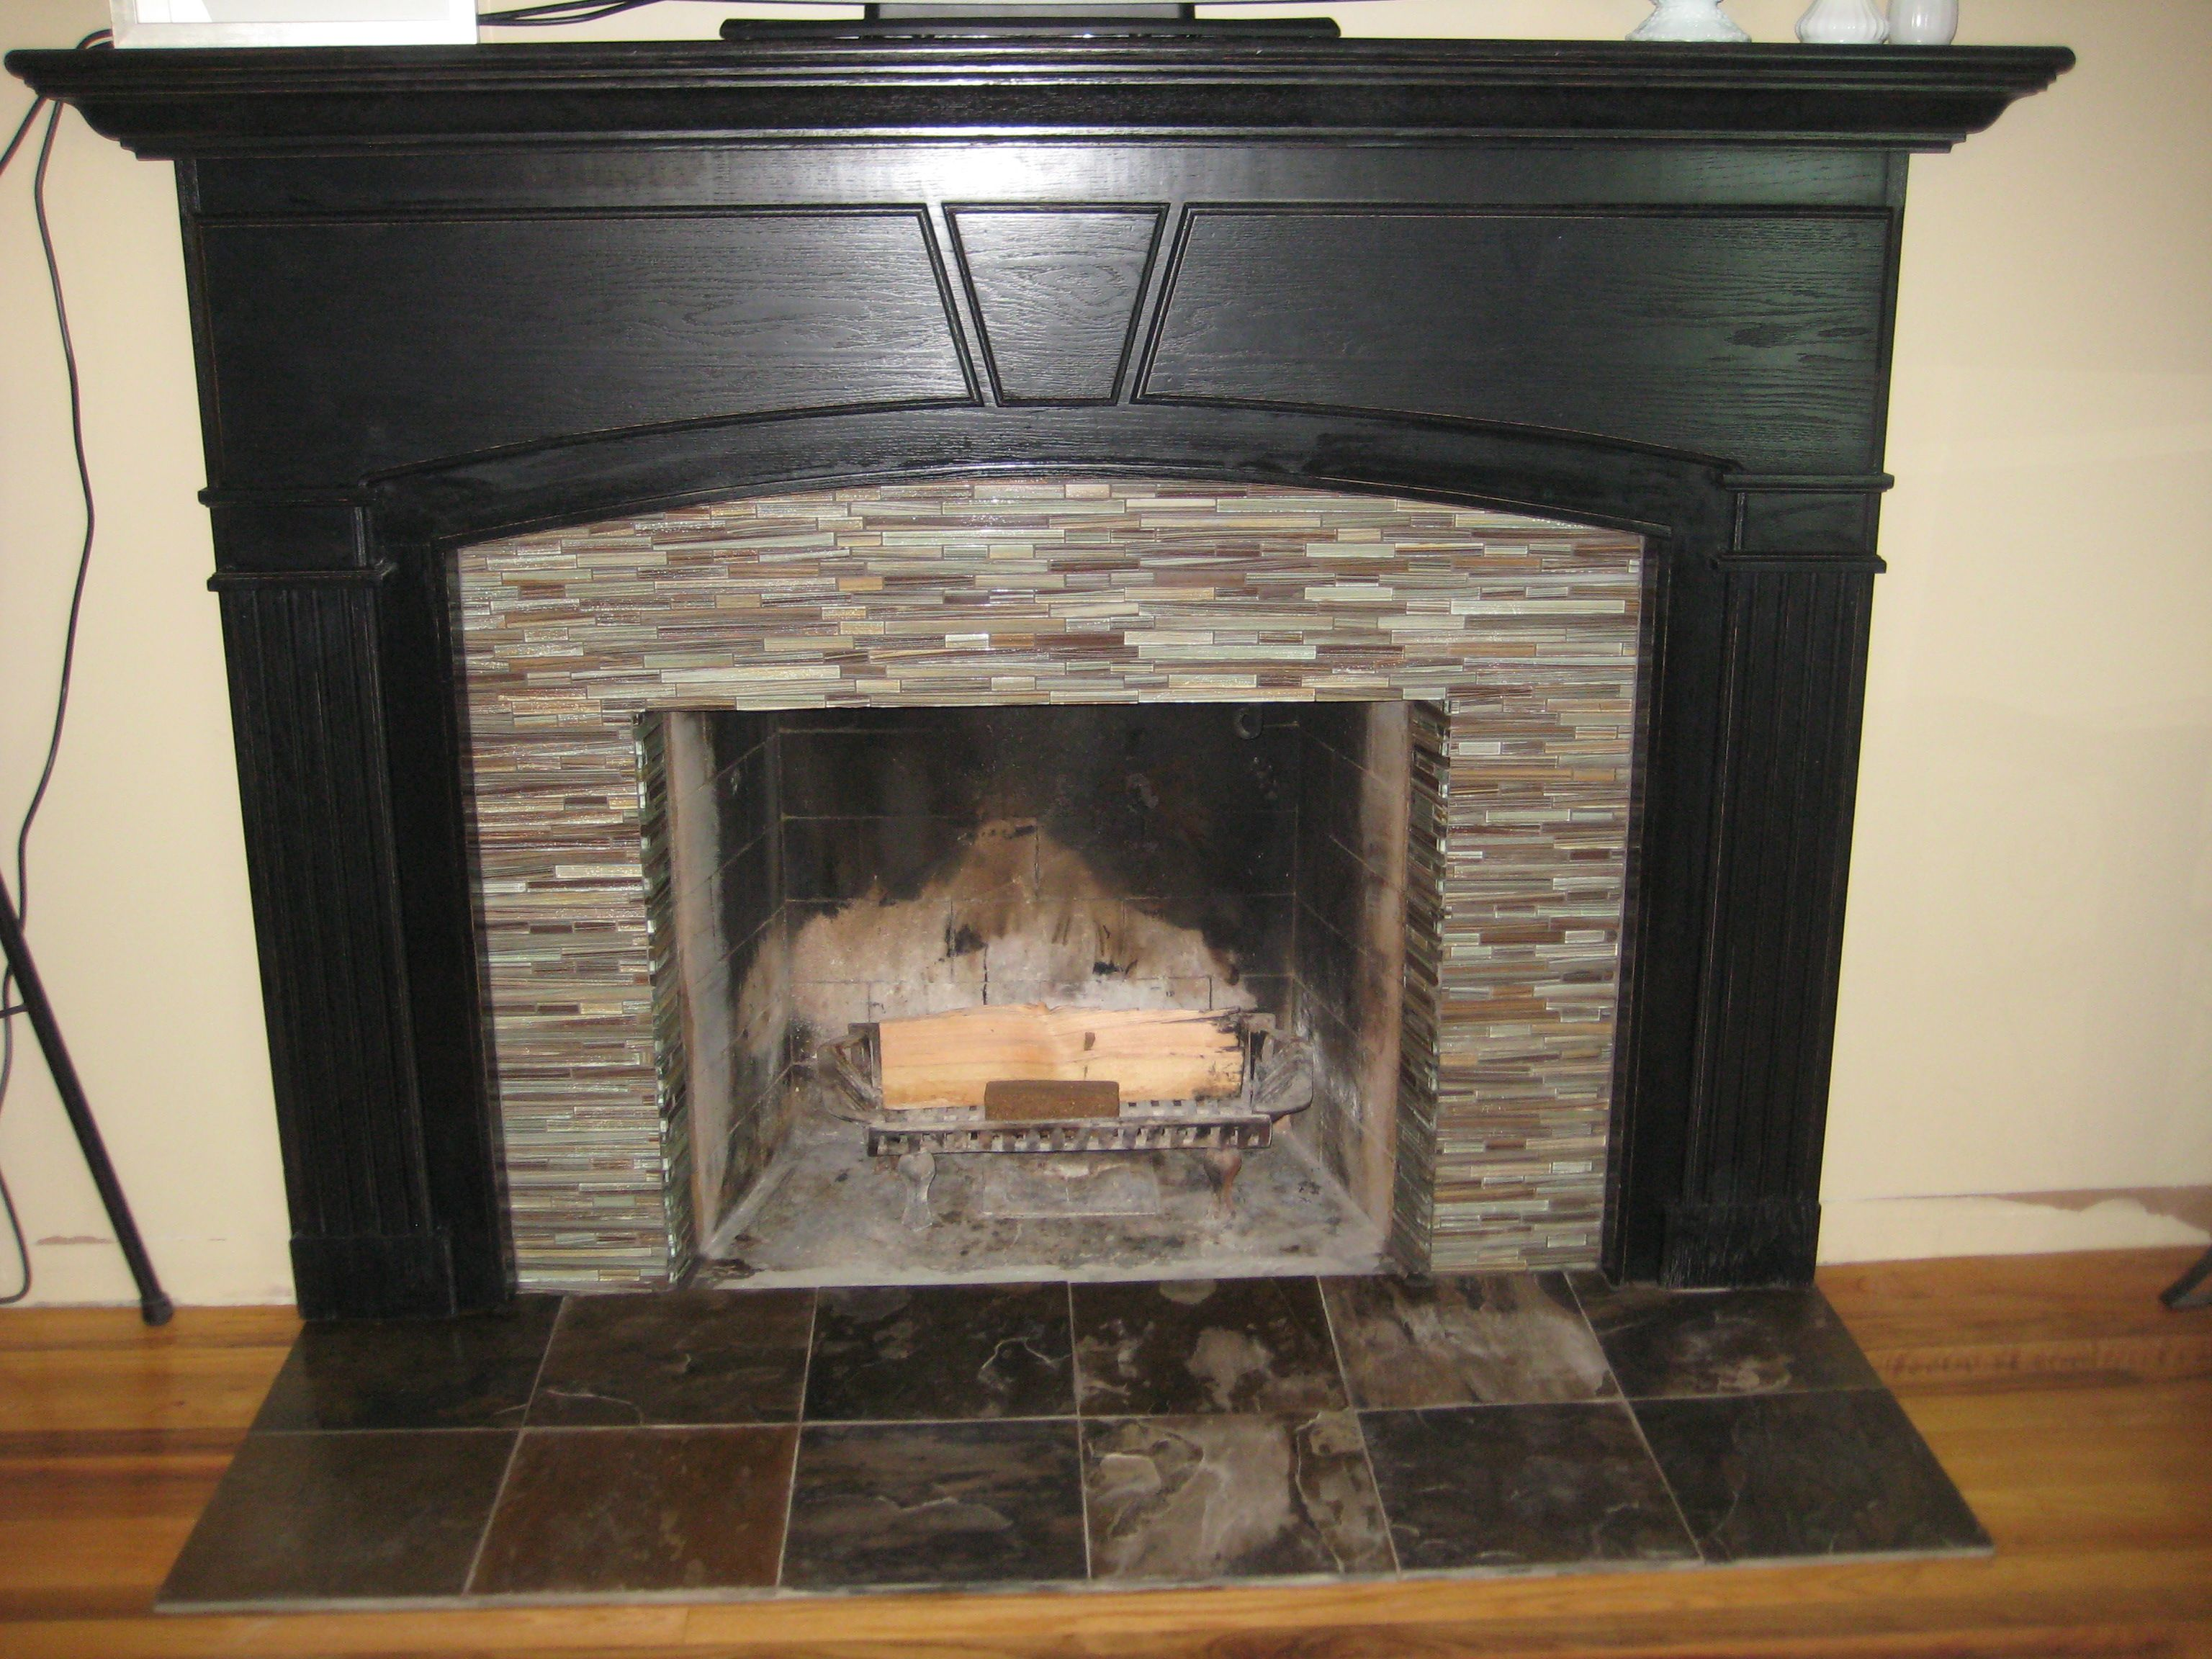 Tile Fireplaces Design Ideas Image Of Fireplace Design Ideas With